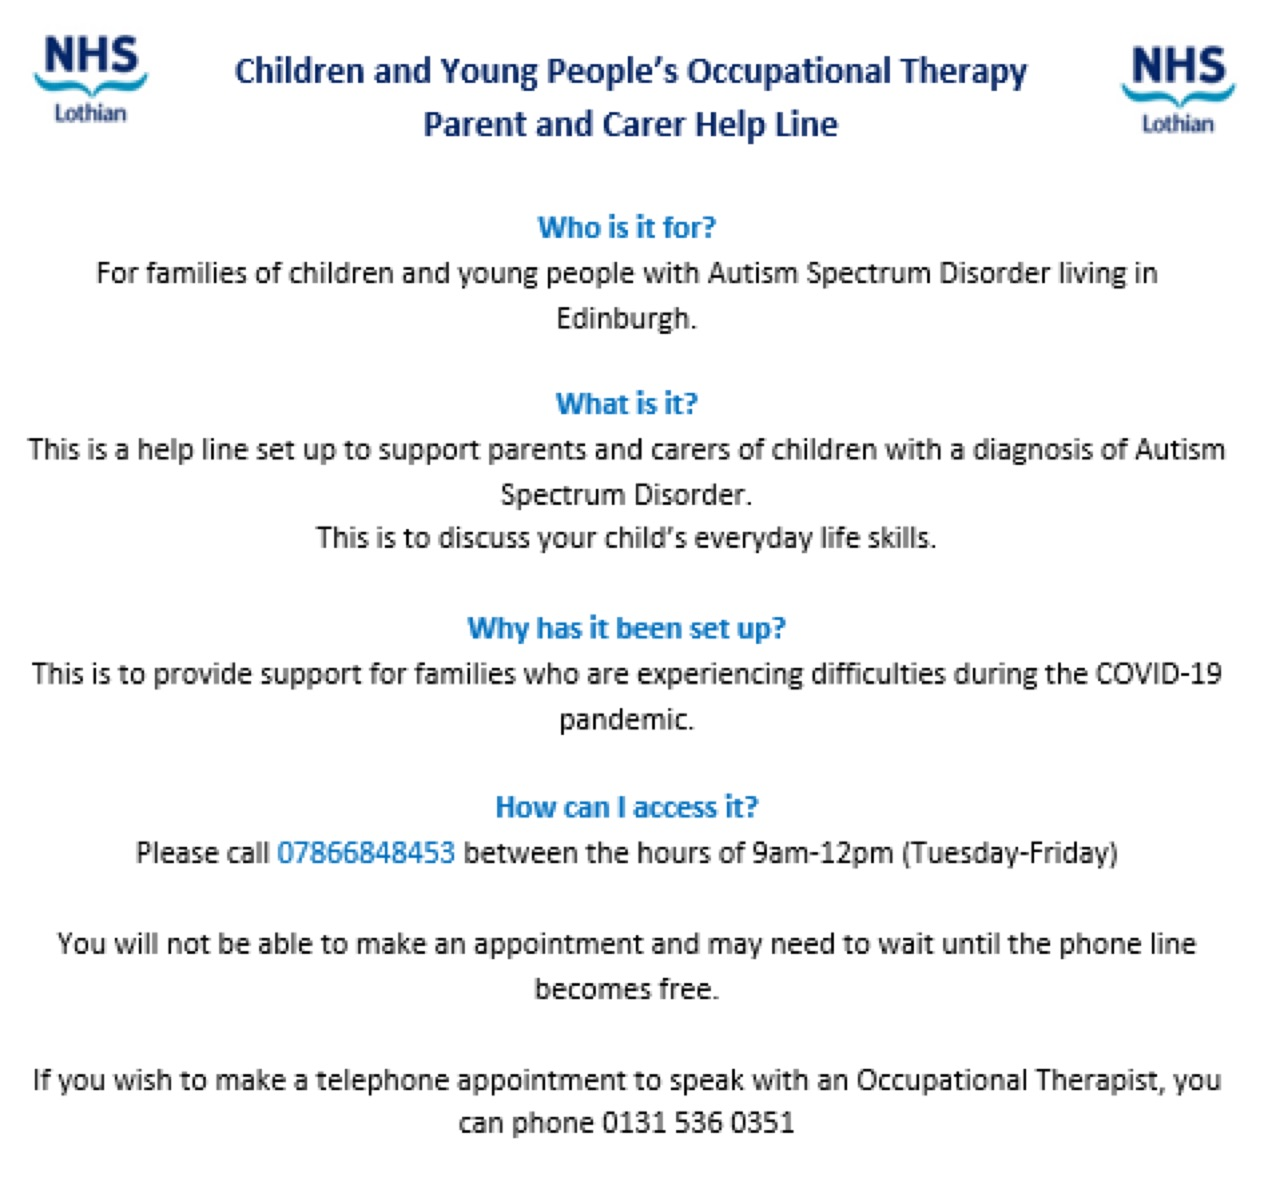 Children and Young People's occupational therapy/ Parent and Carer Help Line